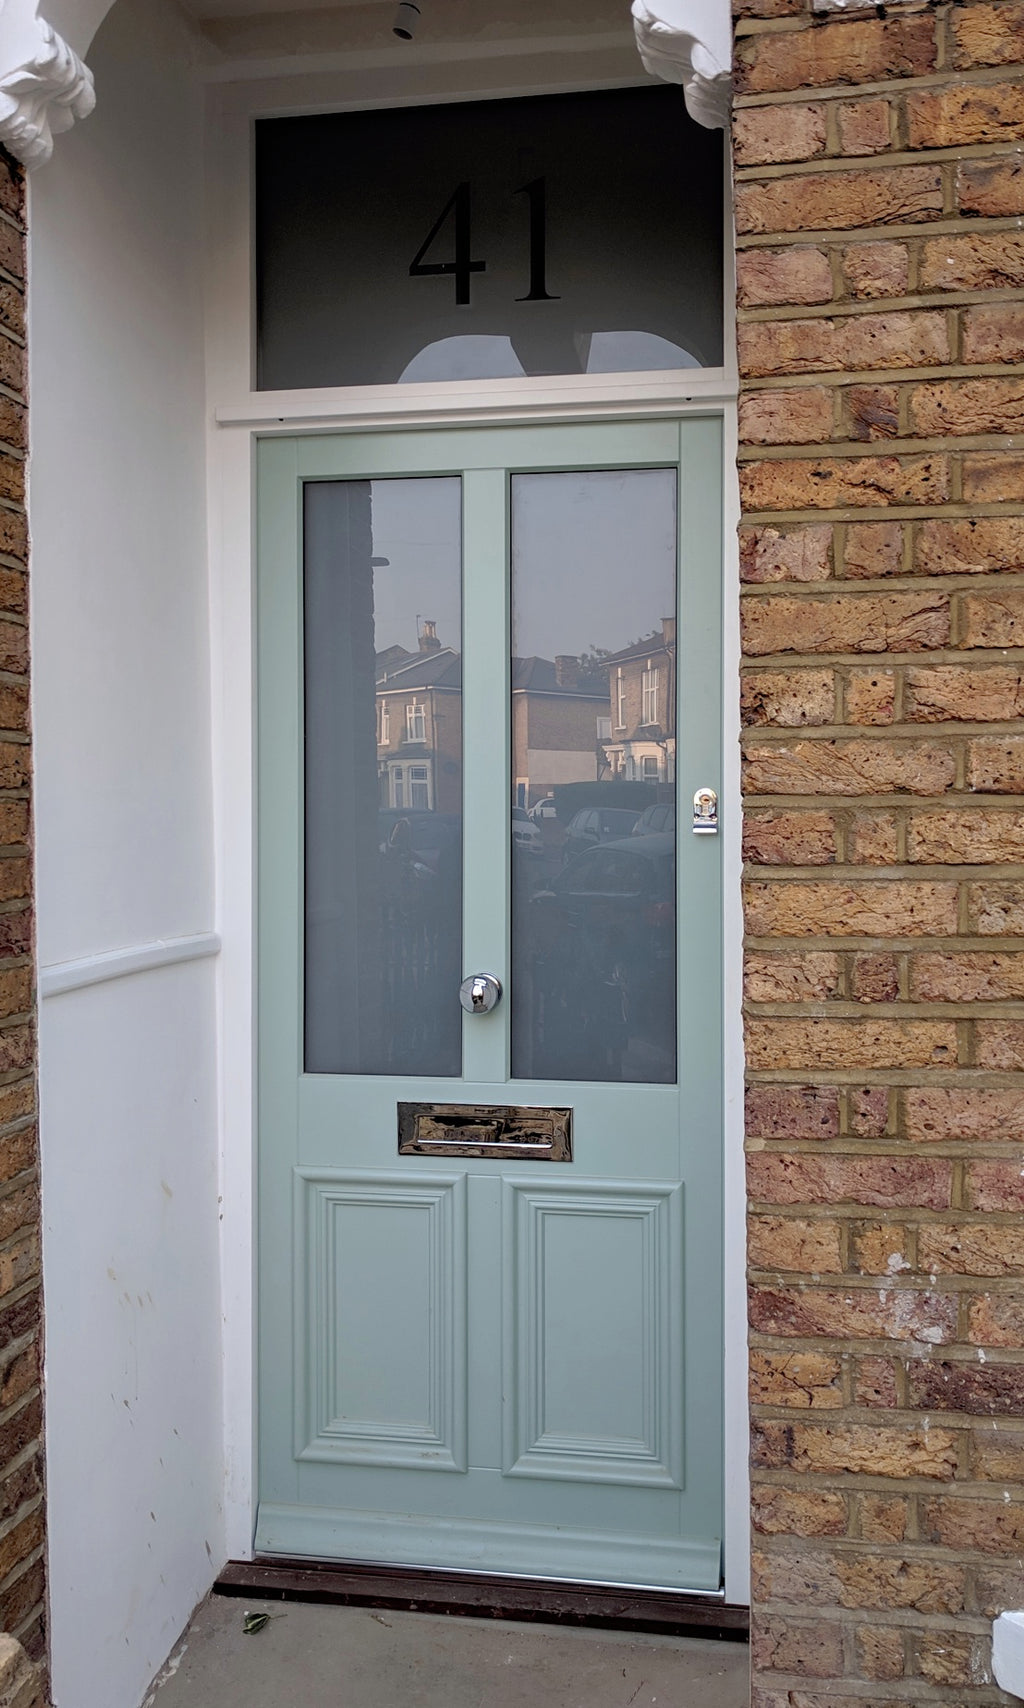 Bespoke Victorian external glazed timber door and fanlight